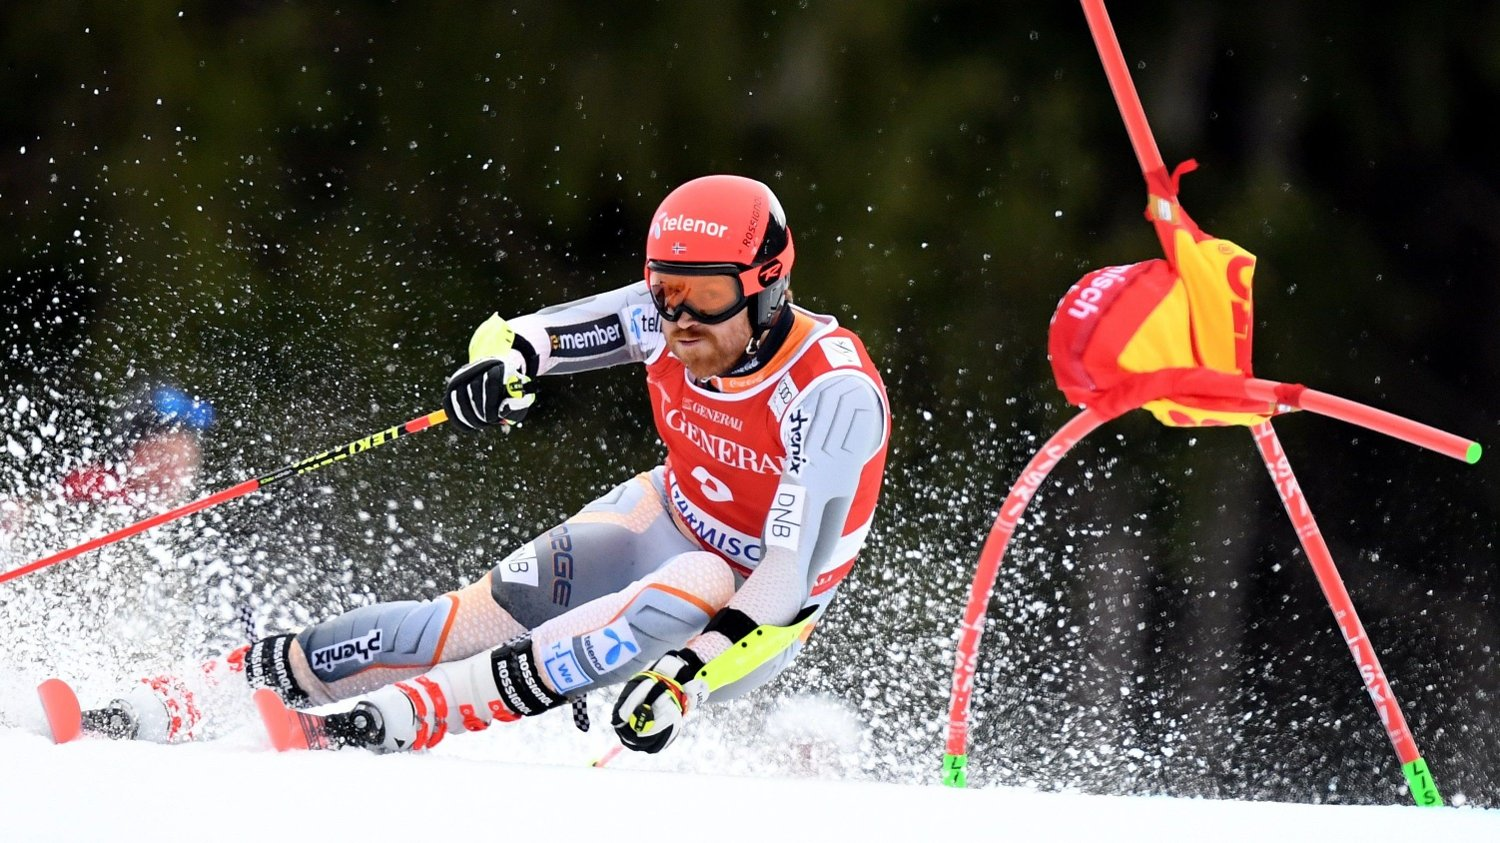 Norway's Leif Kristian Nestvold-Haugen competes in the men's Giant Slalom event at the FIS Alpine Men's Skiing World Cup in Garmisch-Partenkirchen, southern Germany, on February 2, 2020.